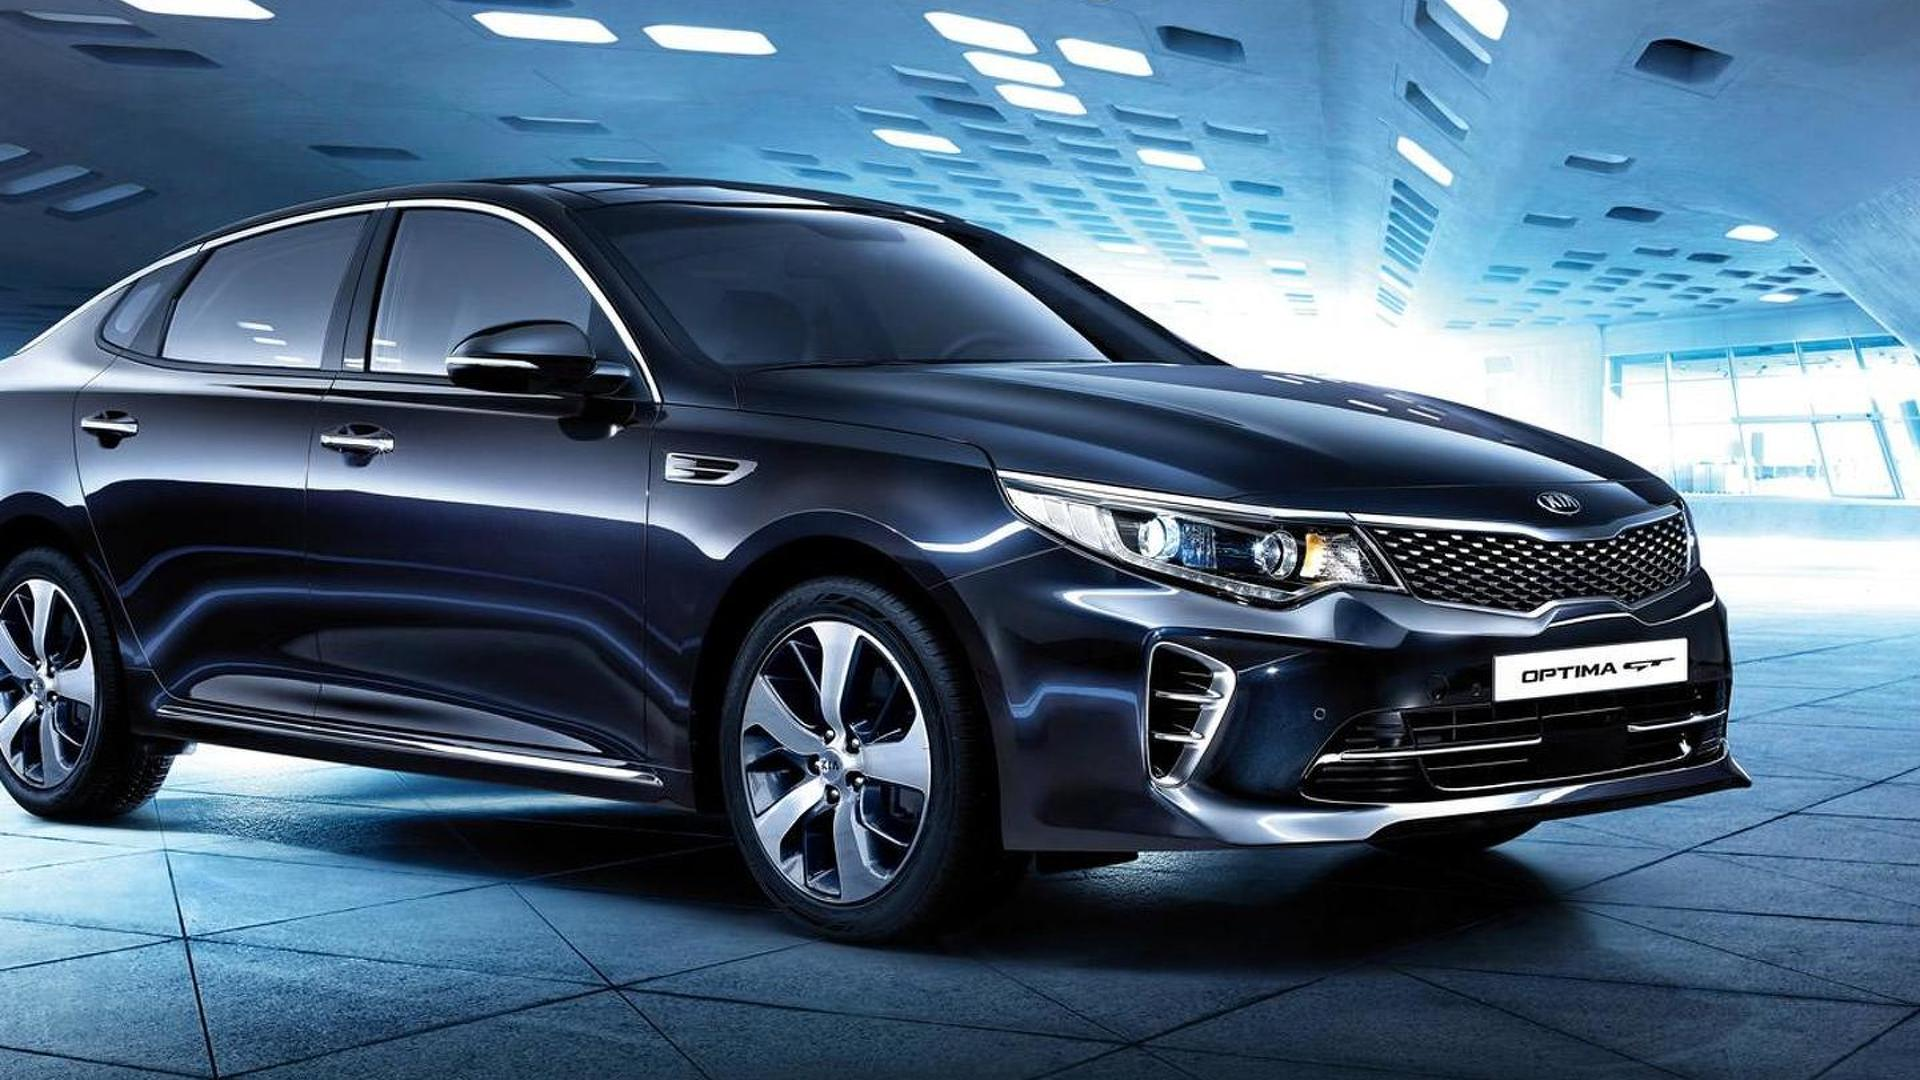 car specs radka blog news s kia optima photos hybrid makes